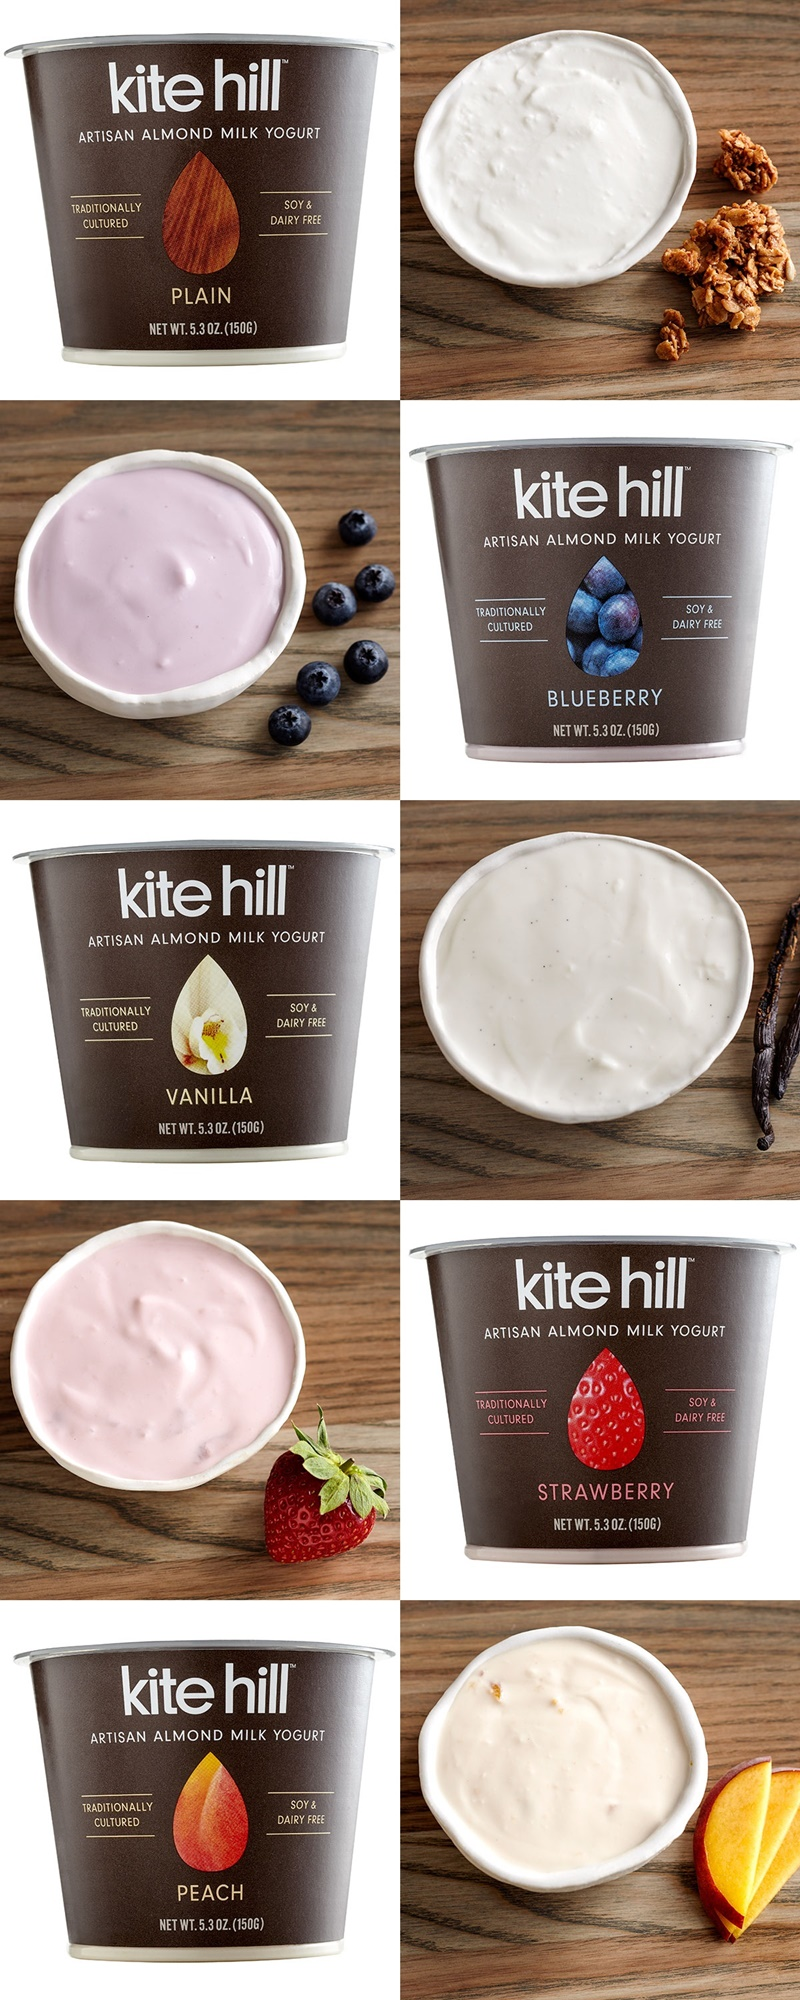 Kite Hill Almond Milk Yogurt; dairy-free, soy-free and vegan, but rich and creamy like true European-style yogurt.